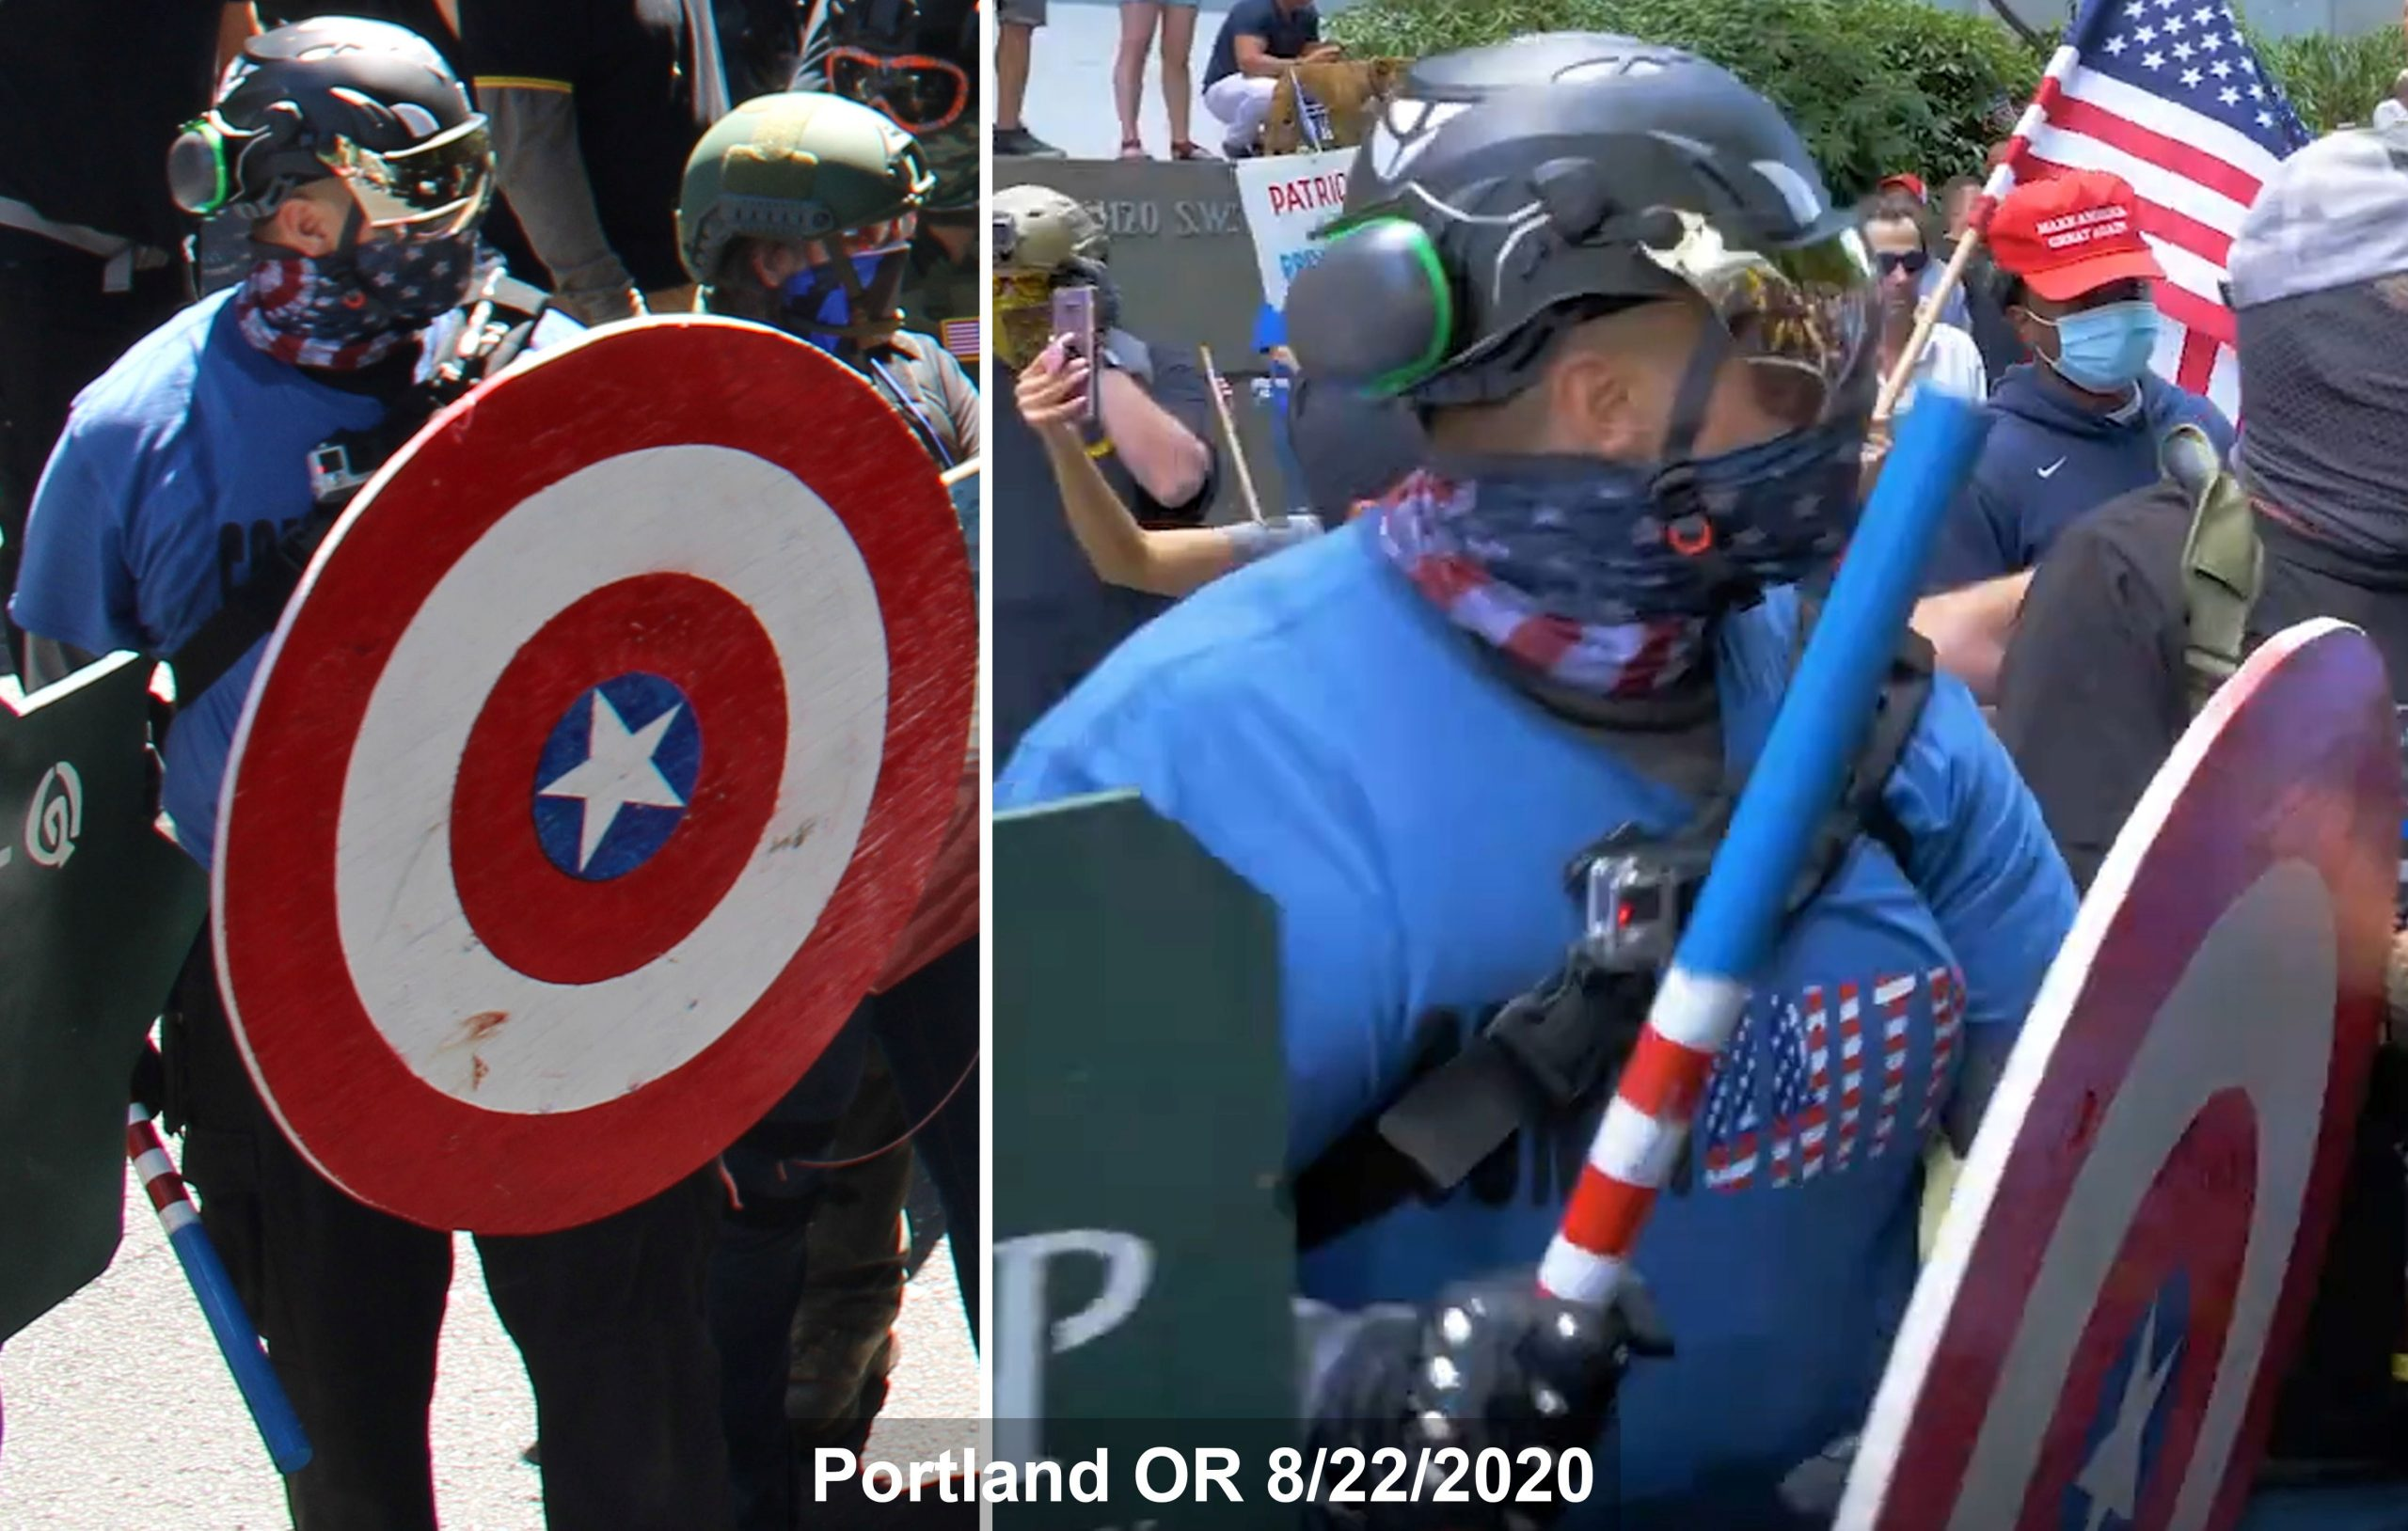 Travis Erickson carries a wooden shield and club on 8/22/2020